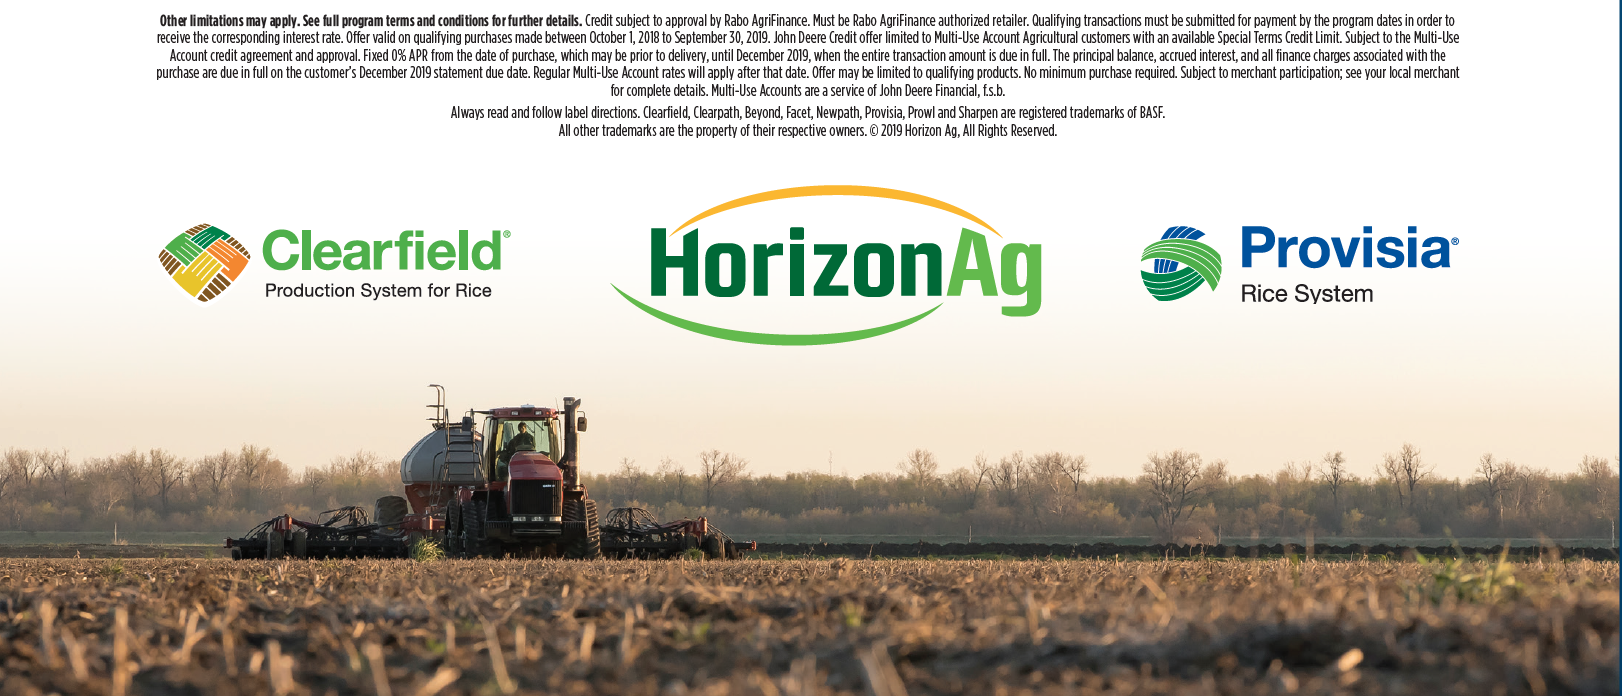 February 2019 Horizon Ag footer